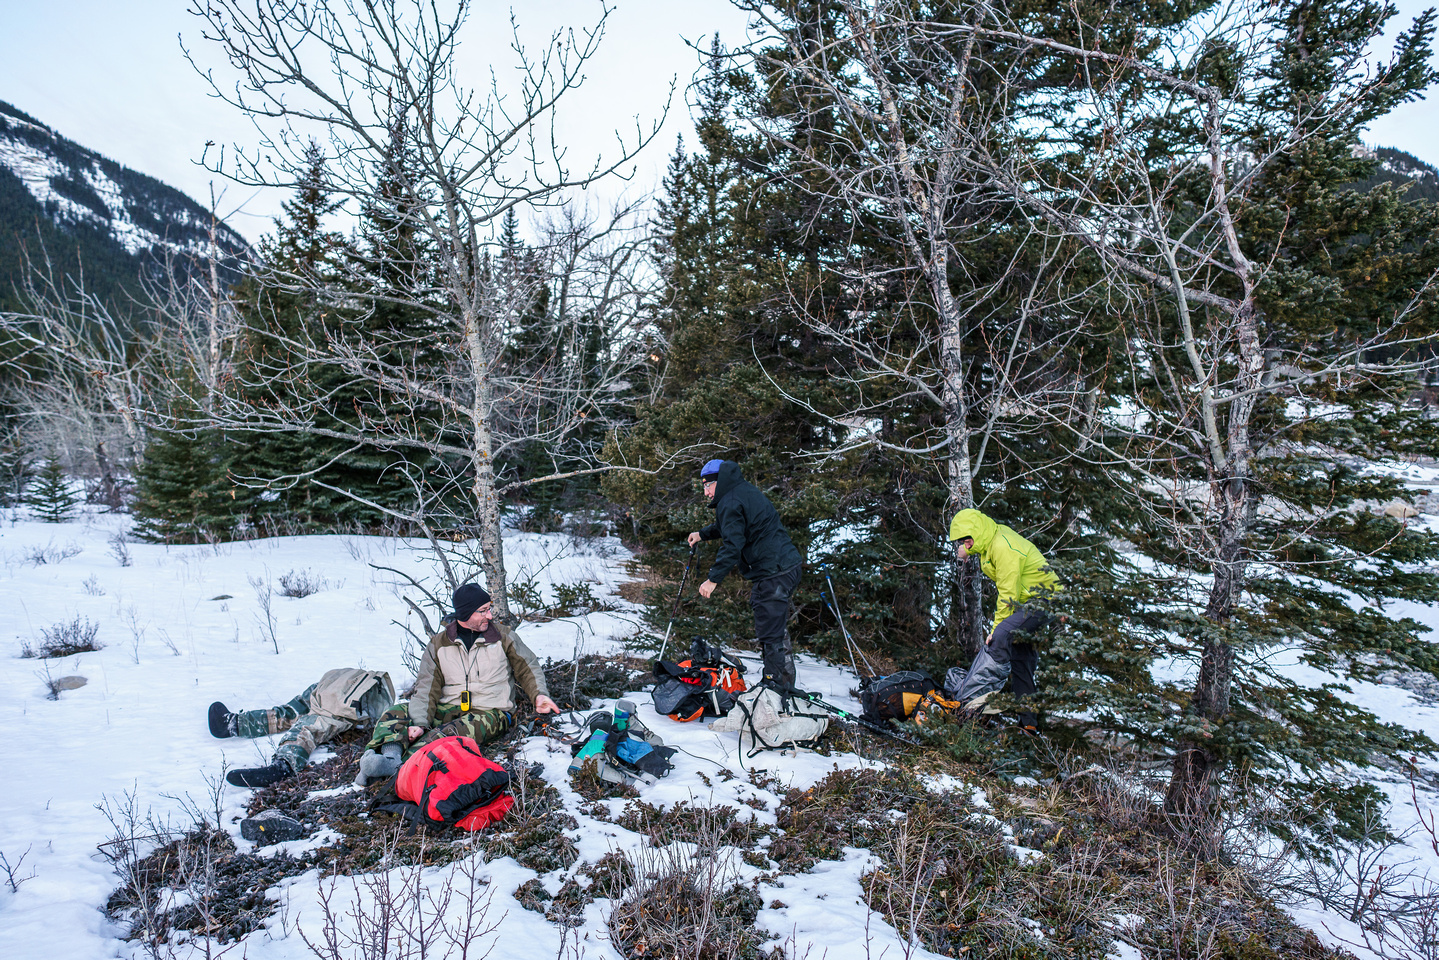 Gearing up for our hike after crossing a frosty Highwood River.